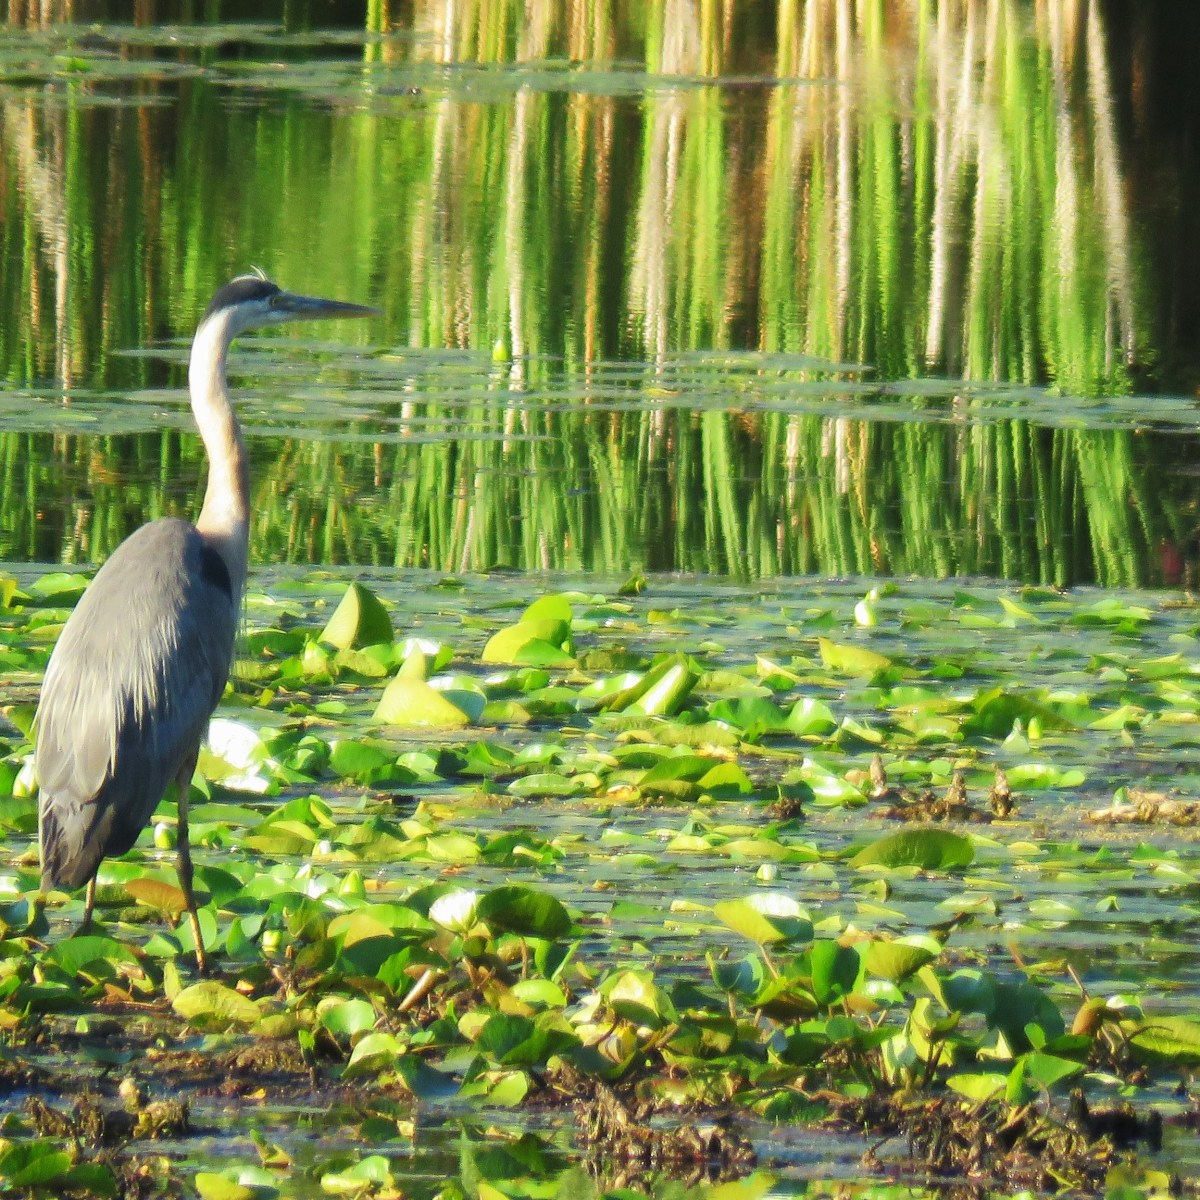 A Great Blue Heron stands among lily pads in the water